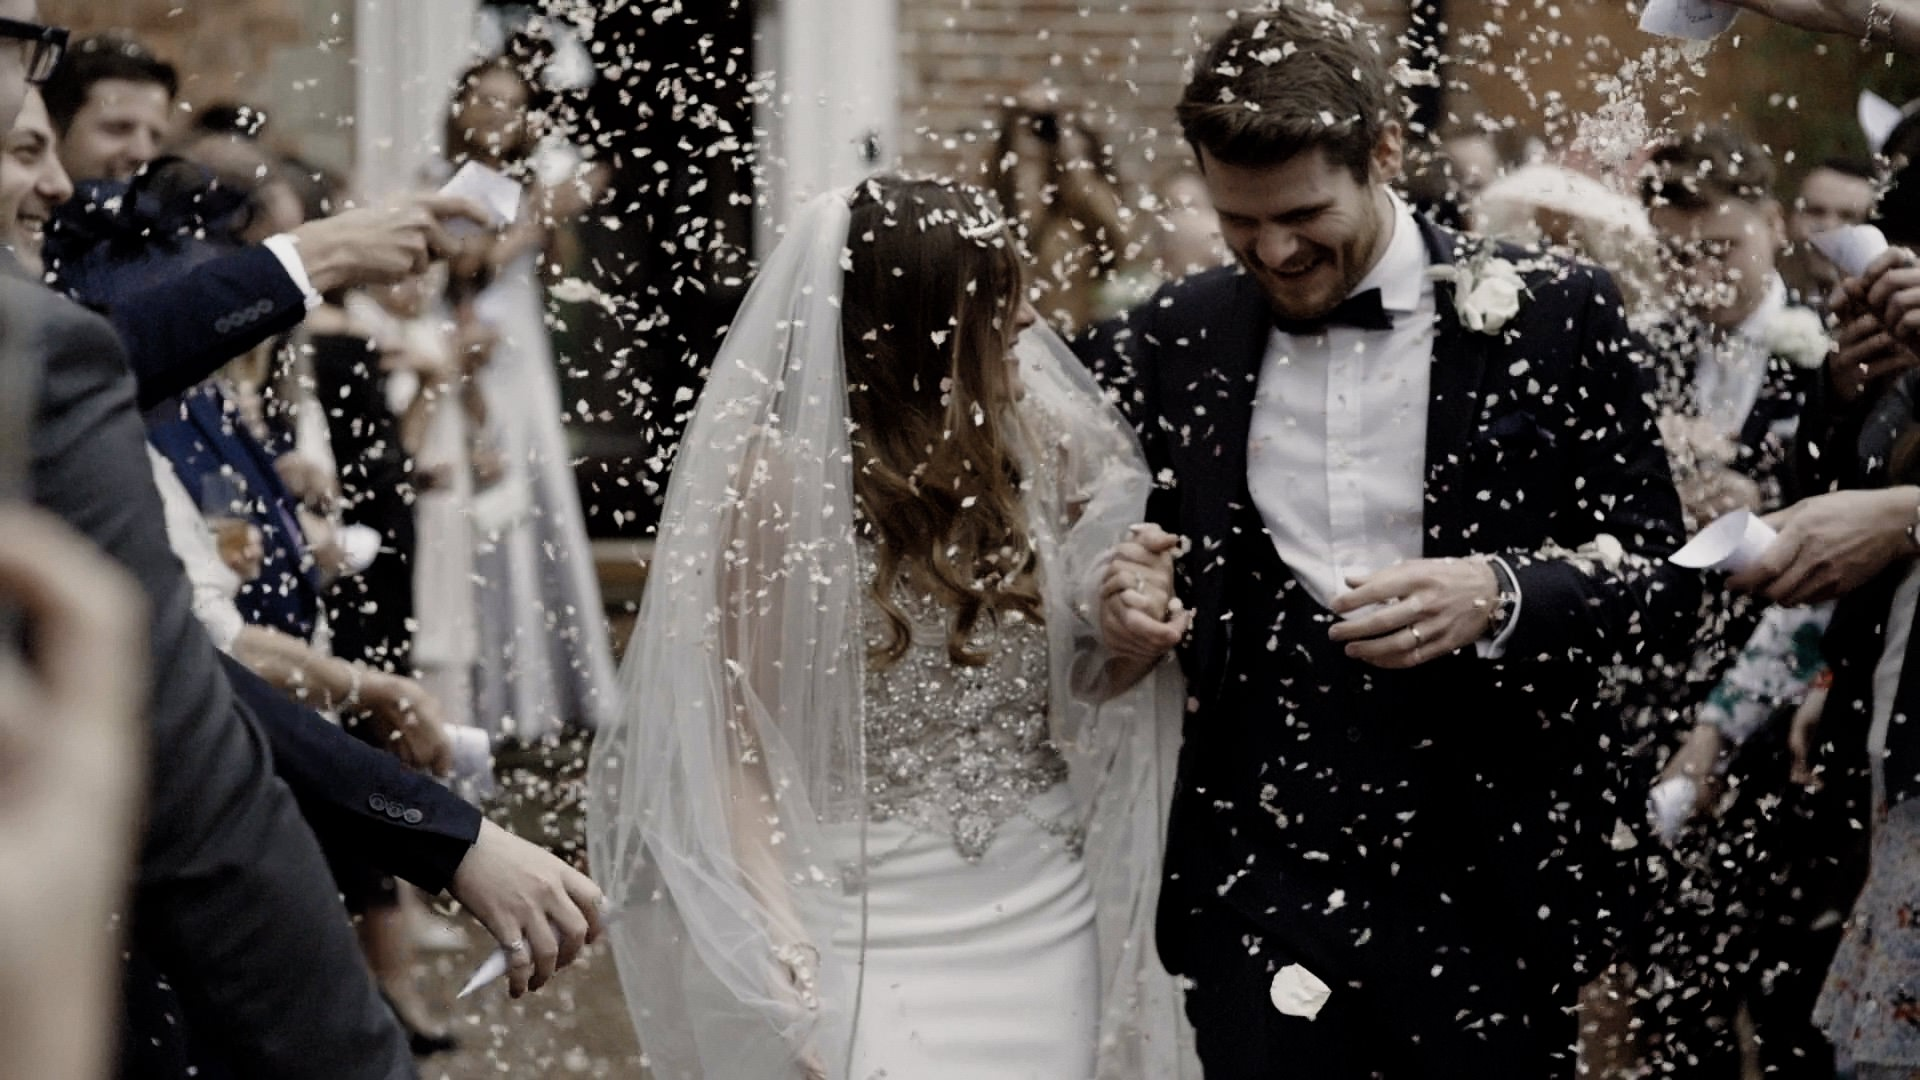 A Freeze Frame from Victoria and Craig's Iscoyd Park Wedding Video. The couple emerge from the venue to a shower of confetti.